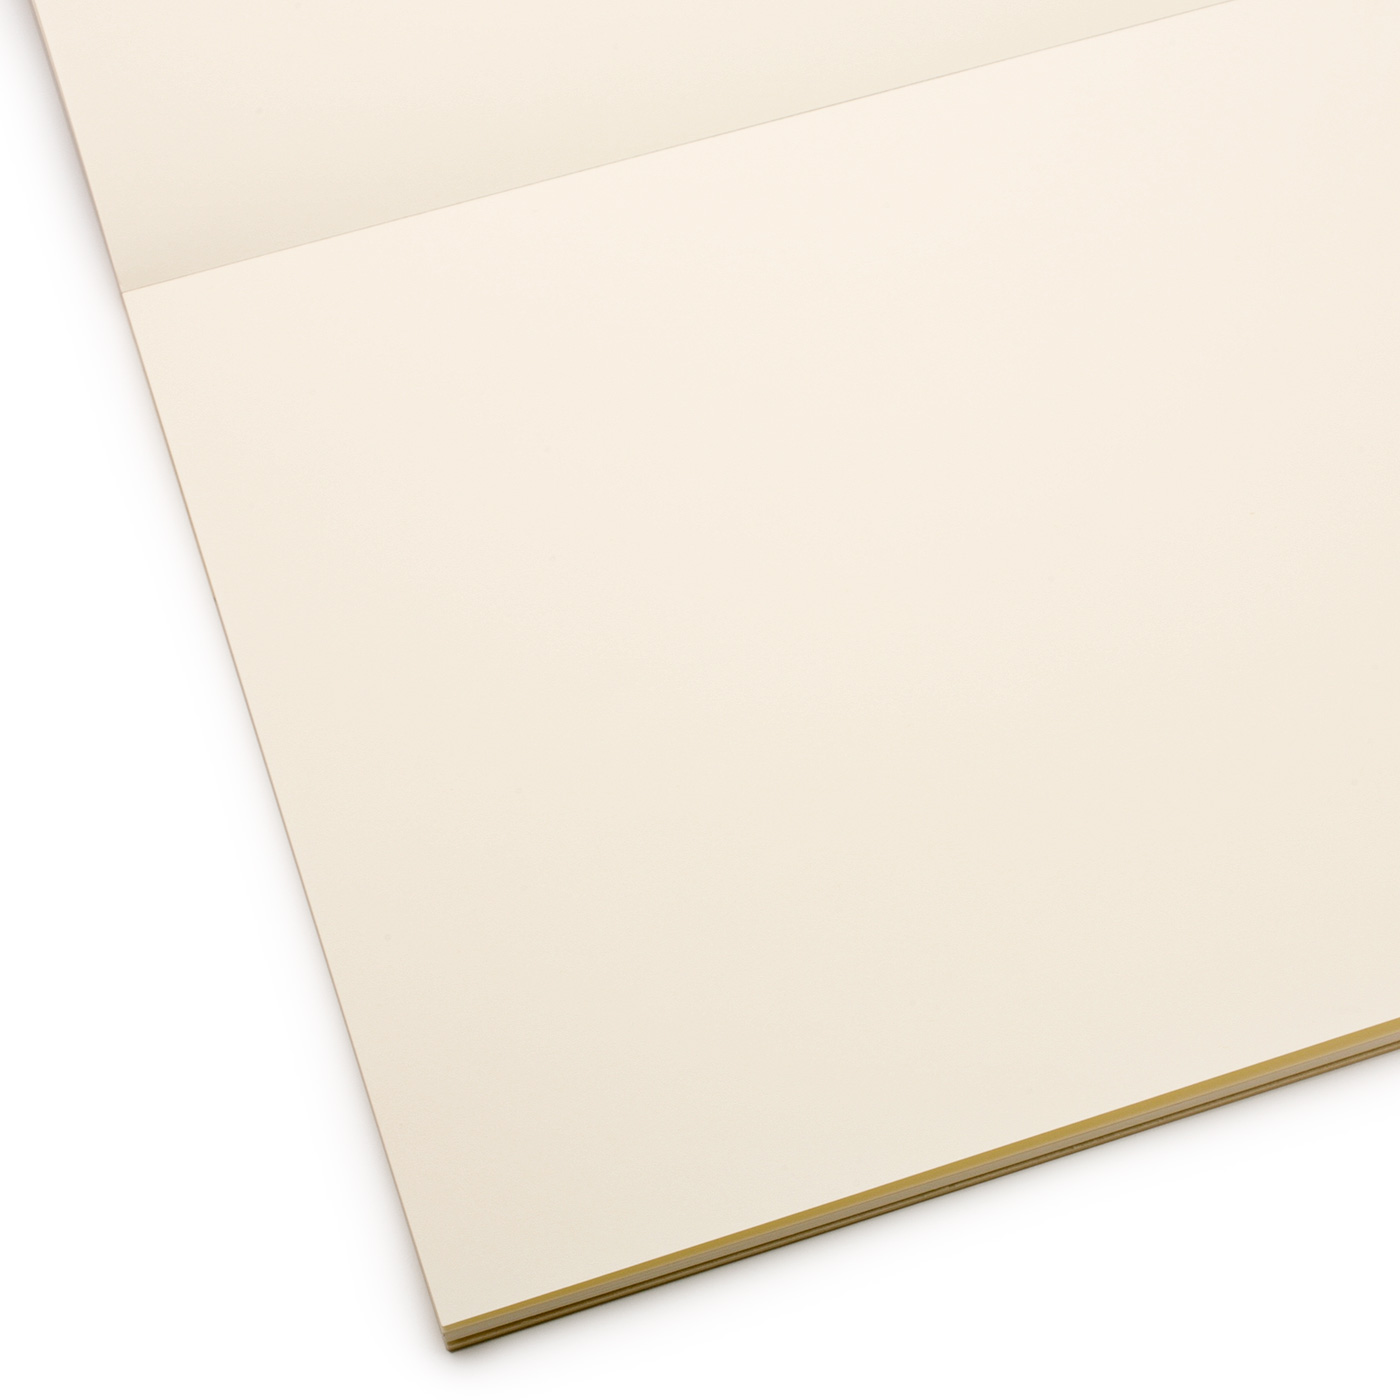 clairefontaine calligraphy pad 9 5 x 12 eco paper at